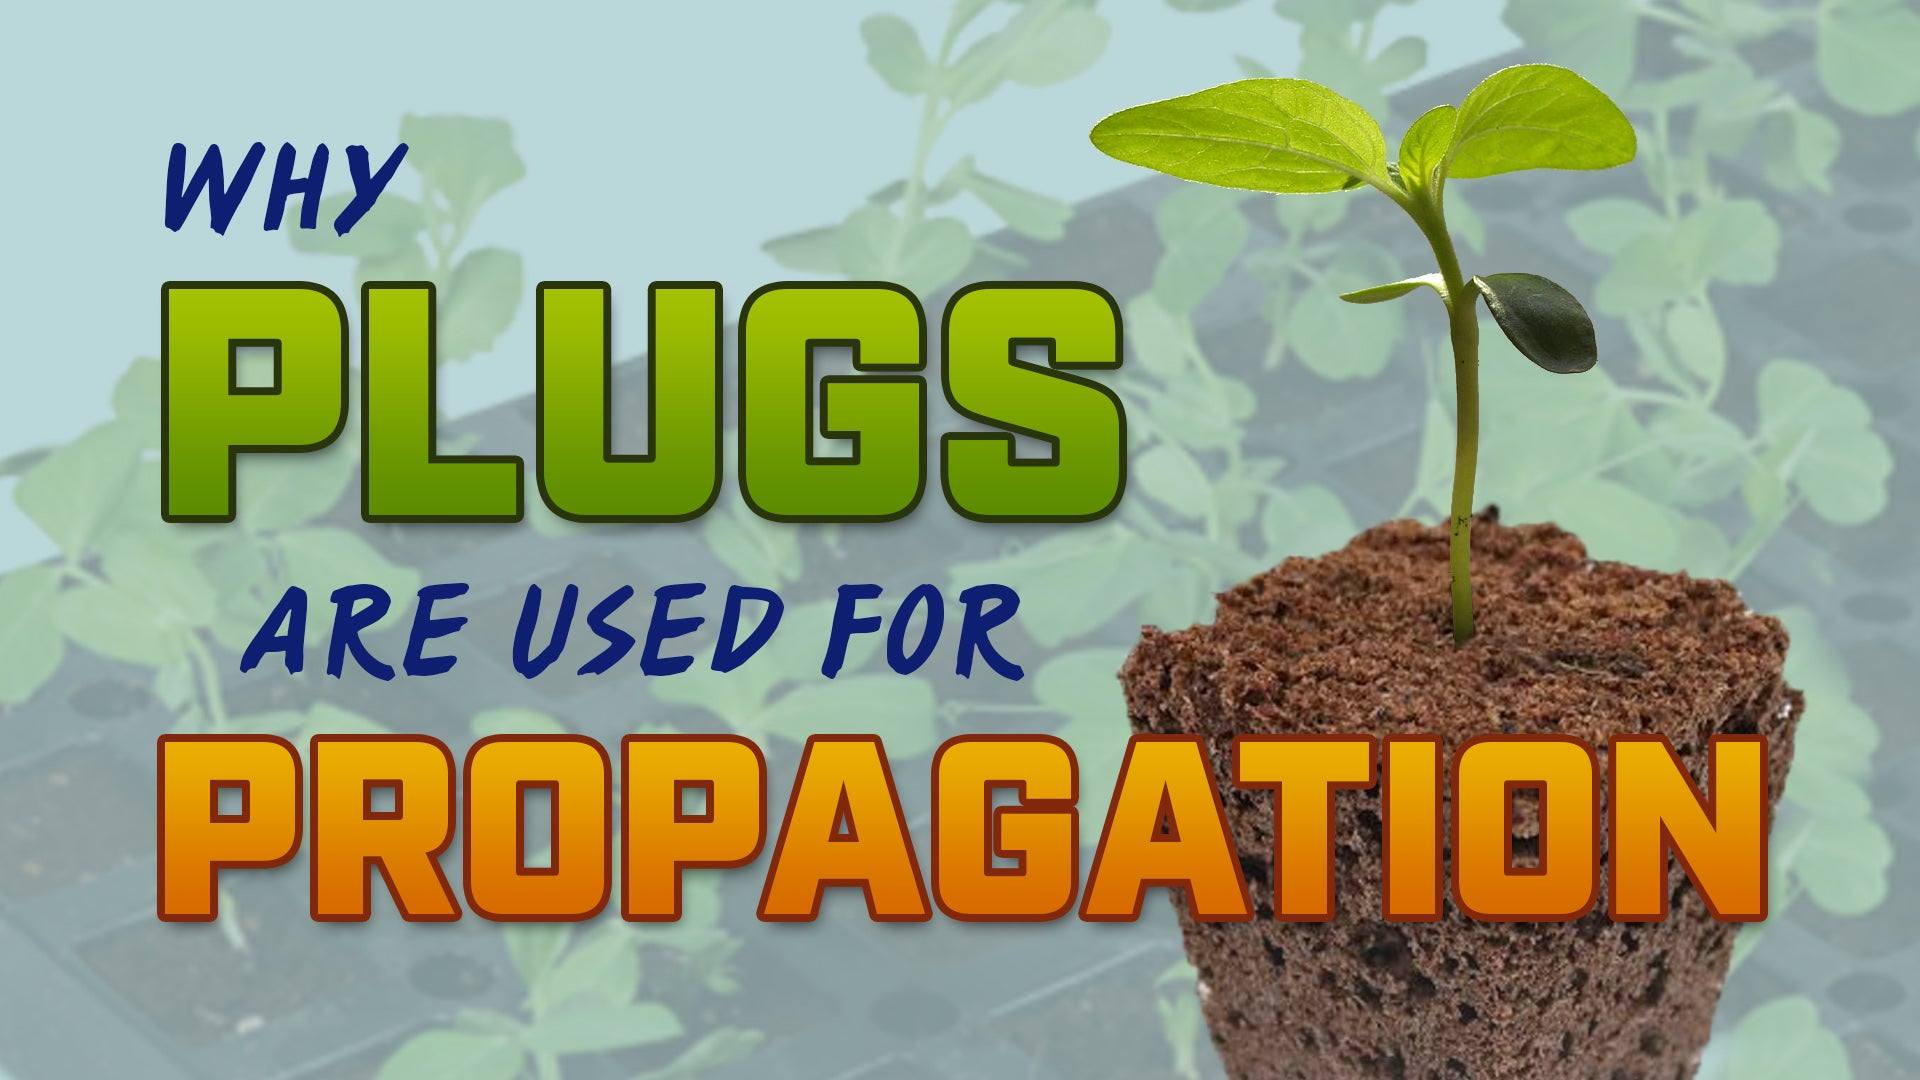 Why plugs are used for propagation